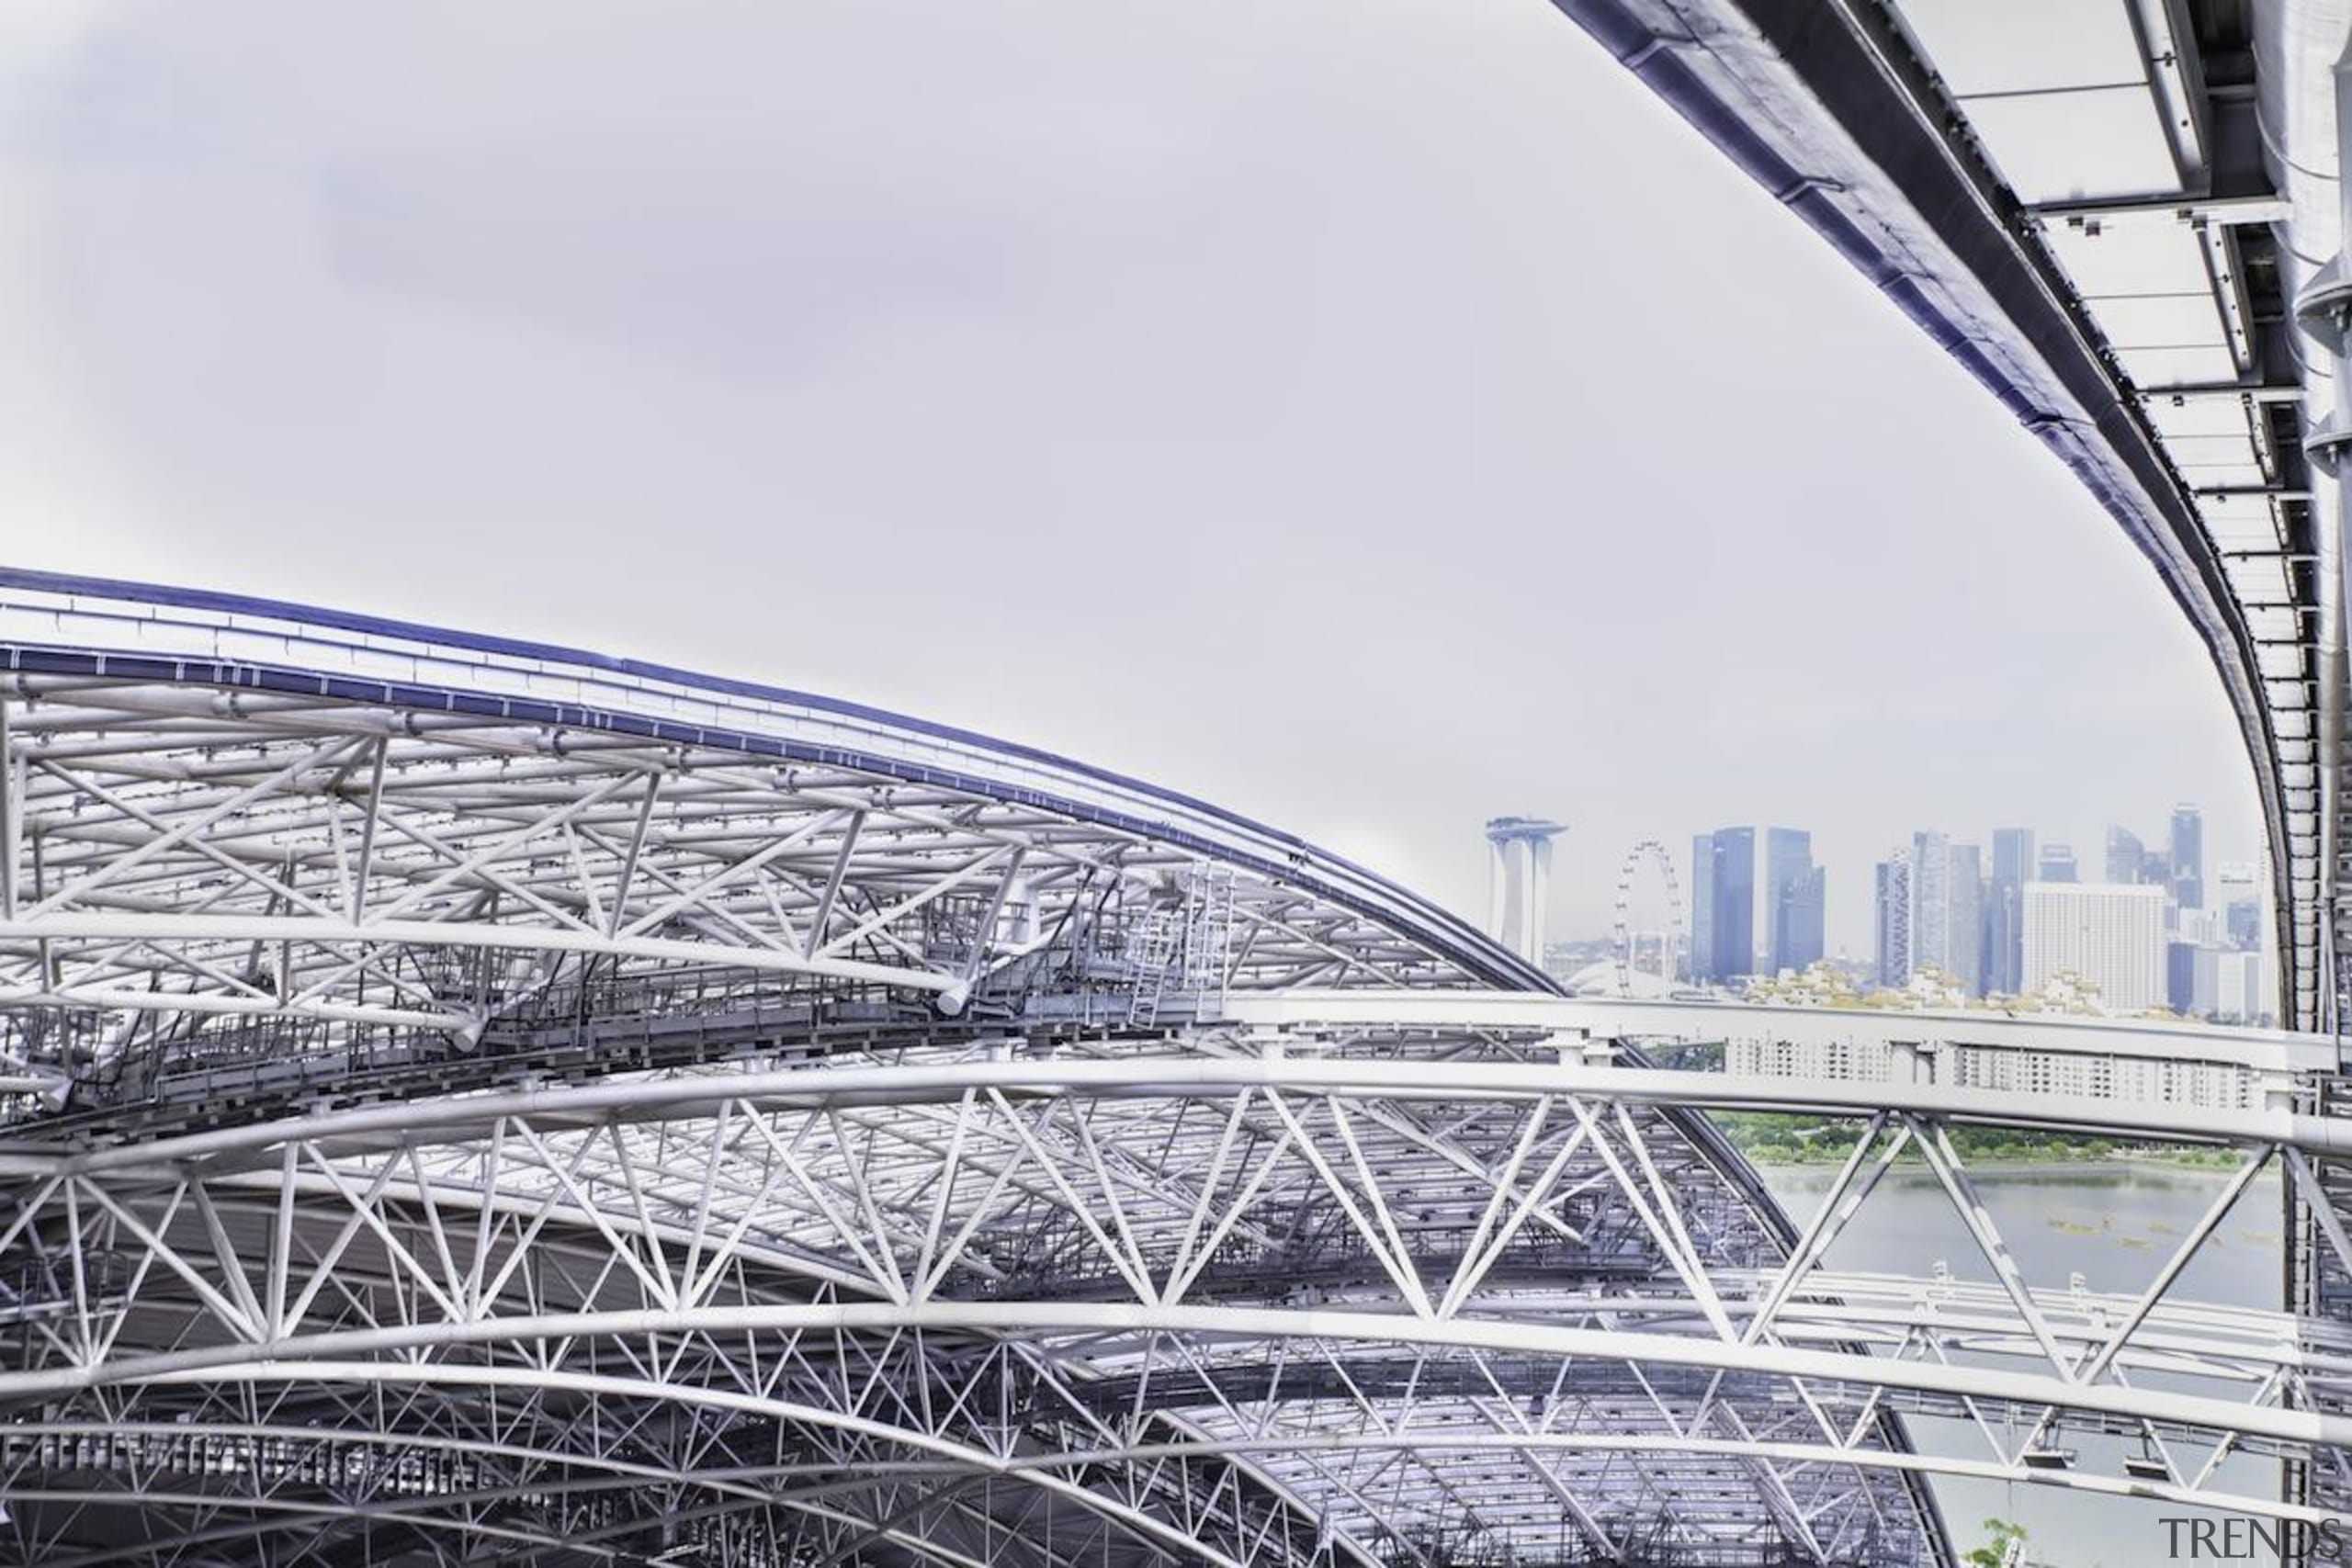 Singapore-based engineering company MHE-Demag provided the roof moving architecture, bridge, building, daytime, fixed link, landmark, line, metropolis, metropolitan area, sky, skyway, sport venue, stadium, structure, urban area, white